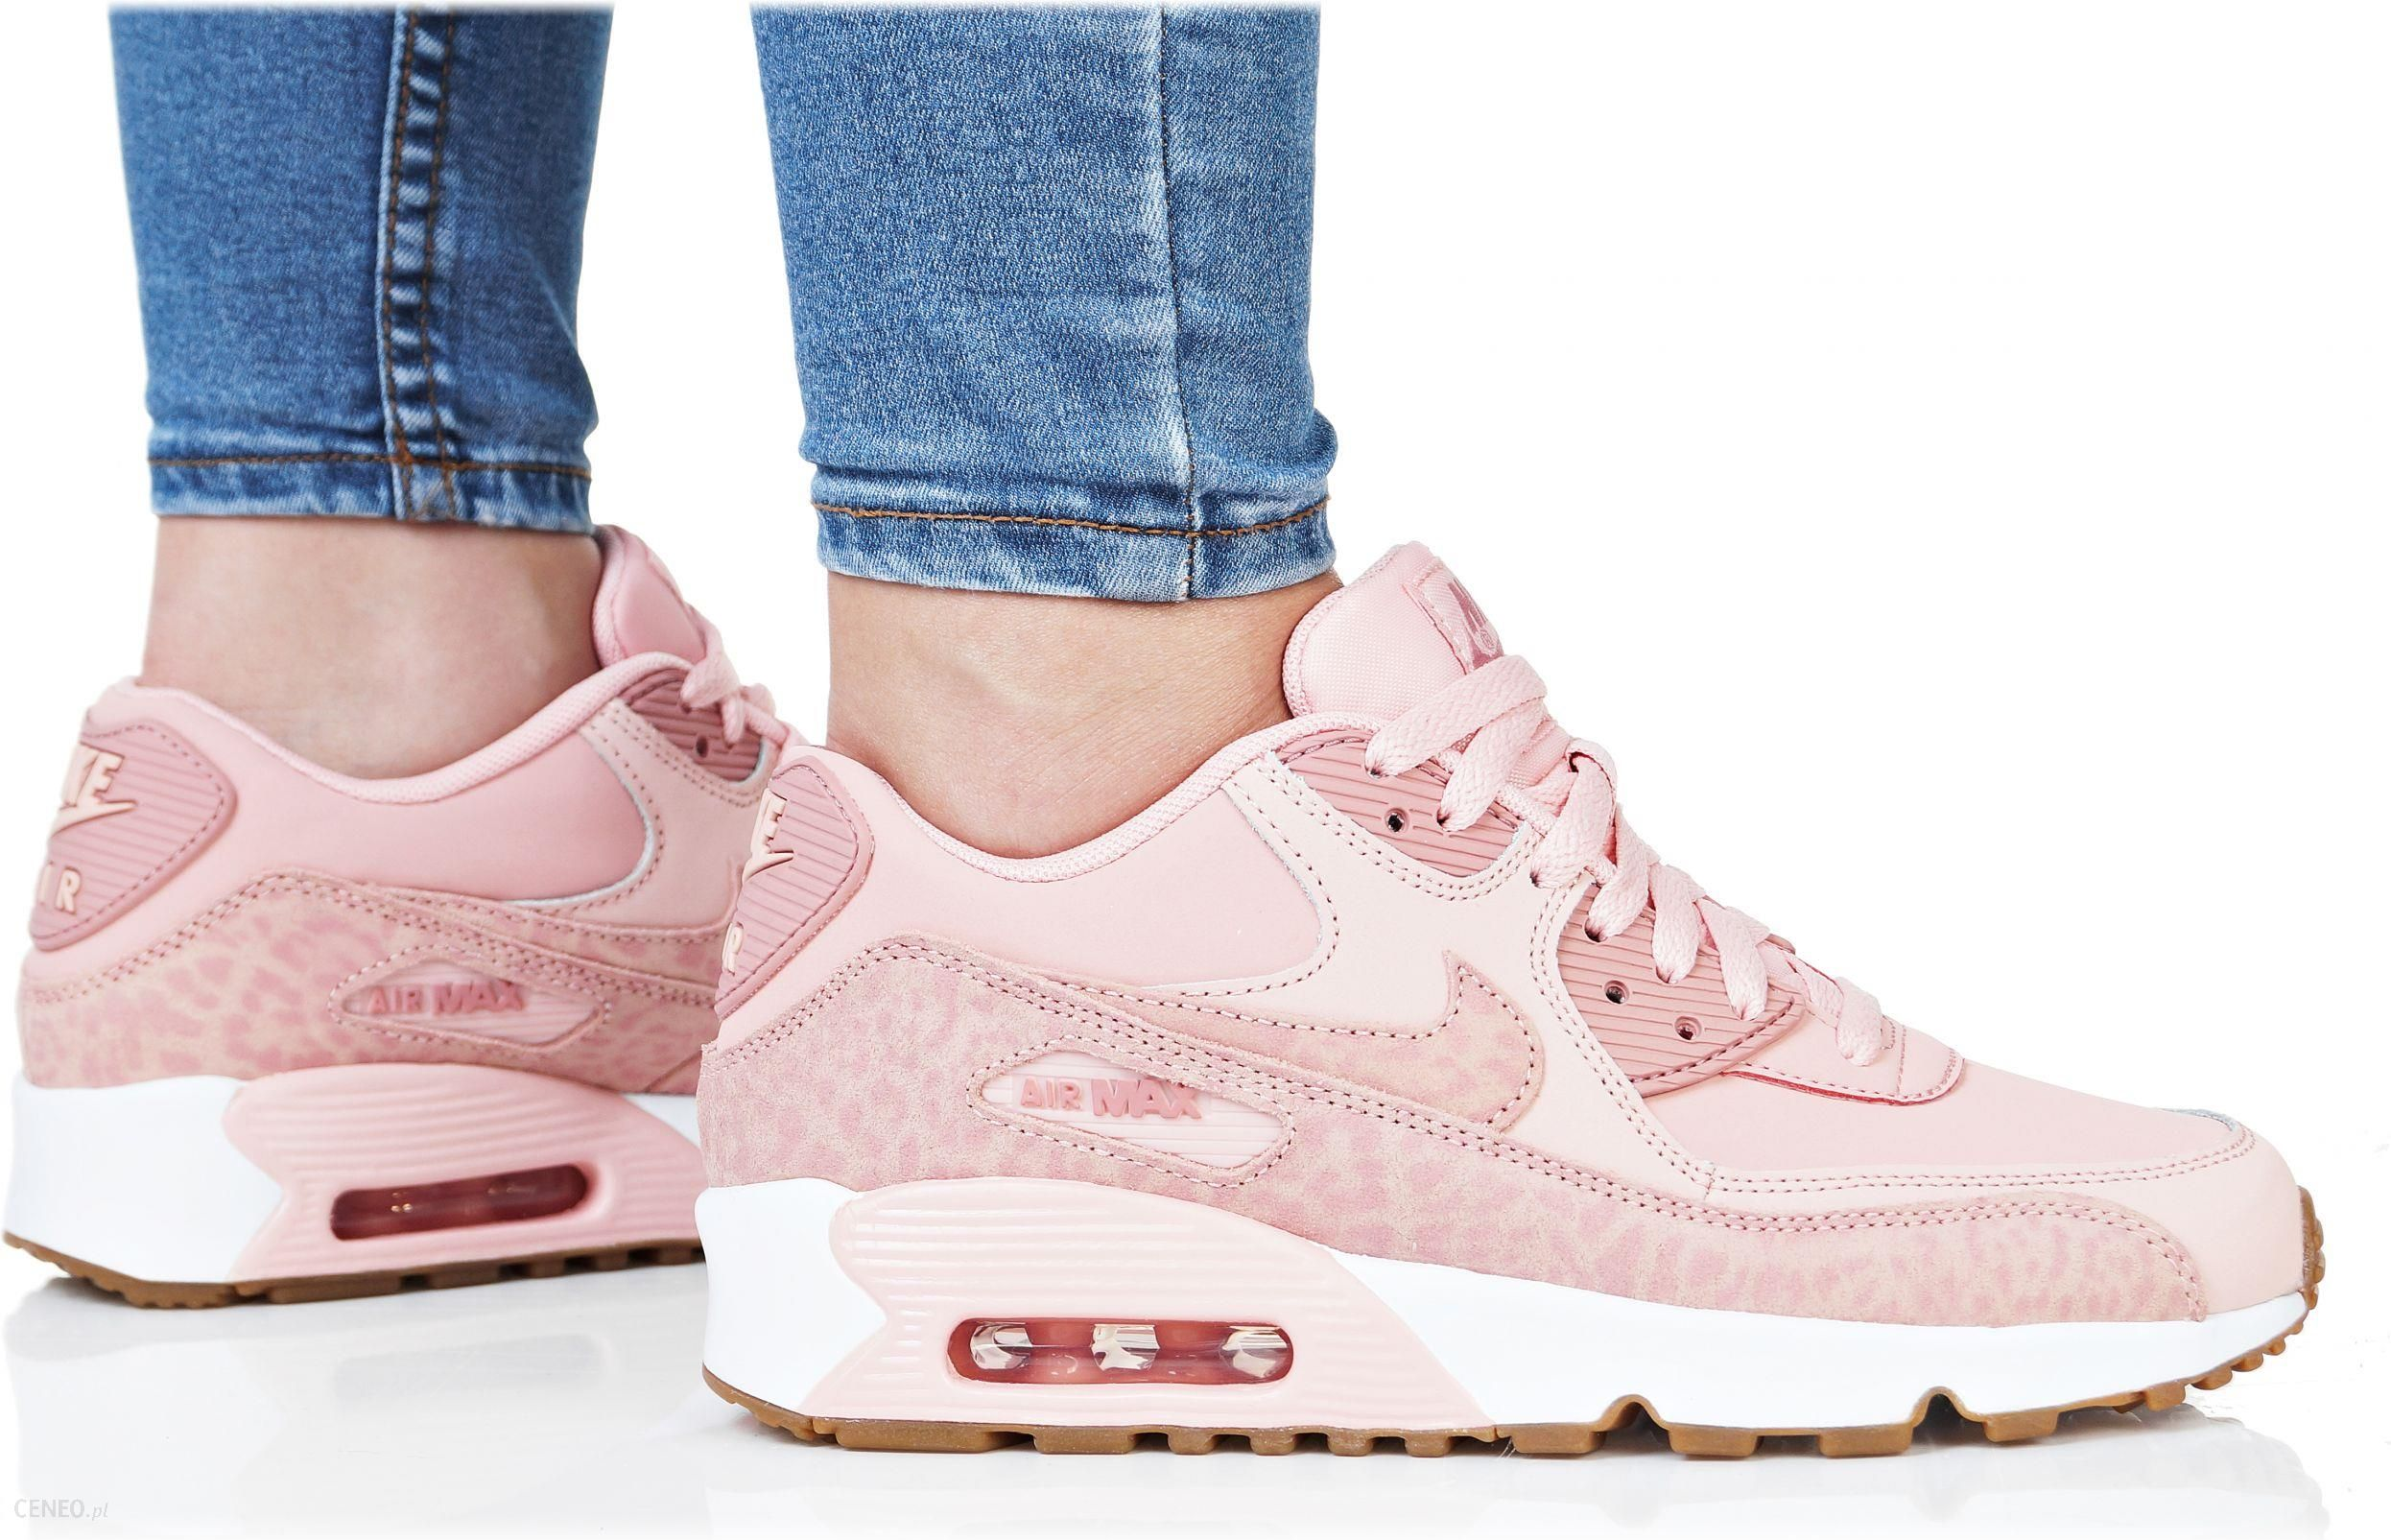 Nike AIR MAX 90 LEATHER SE GG 897987 004 Ceny i opinie Ceneo.pl